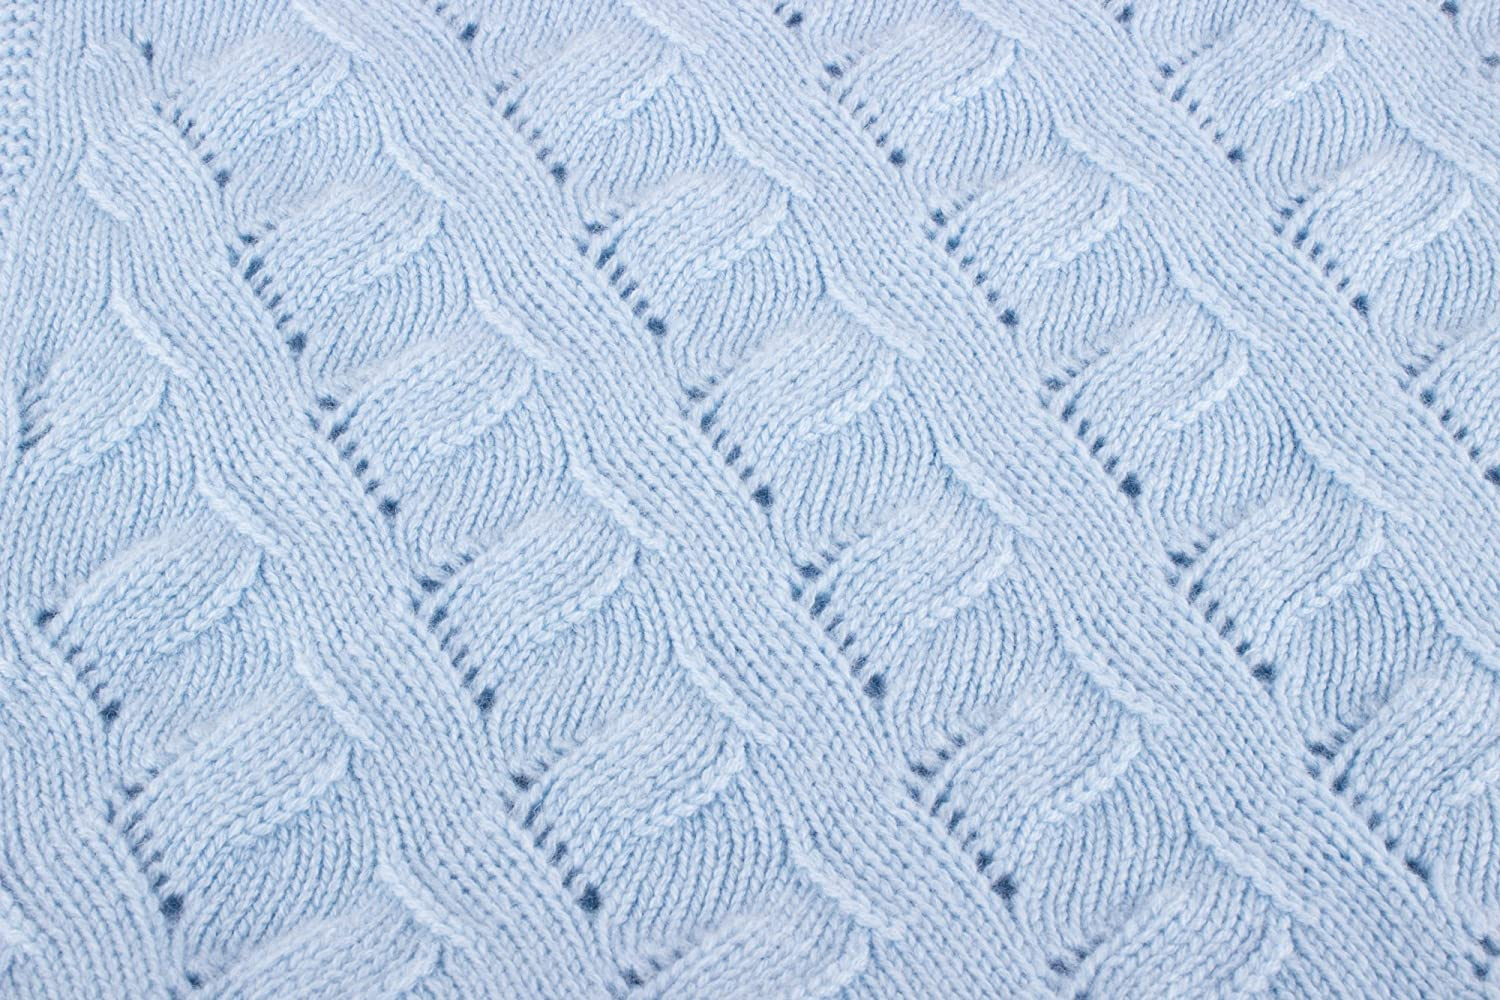 Boys Luxury 100/% Cashmere Baby Blanket hand made in Scotland by Love Cashmere RRP 160 Baby Blue